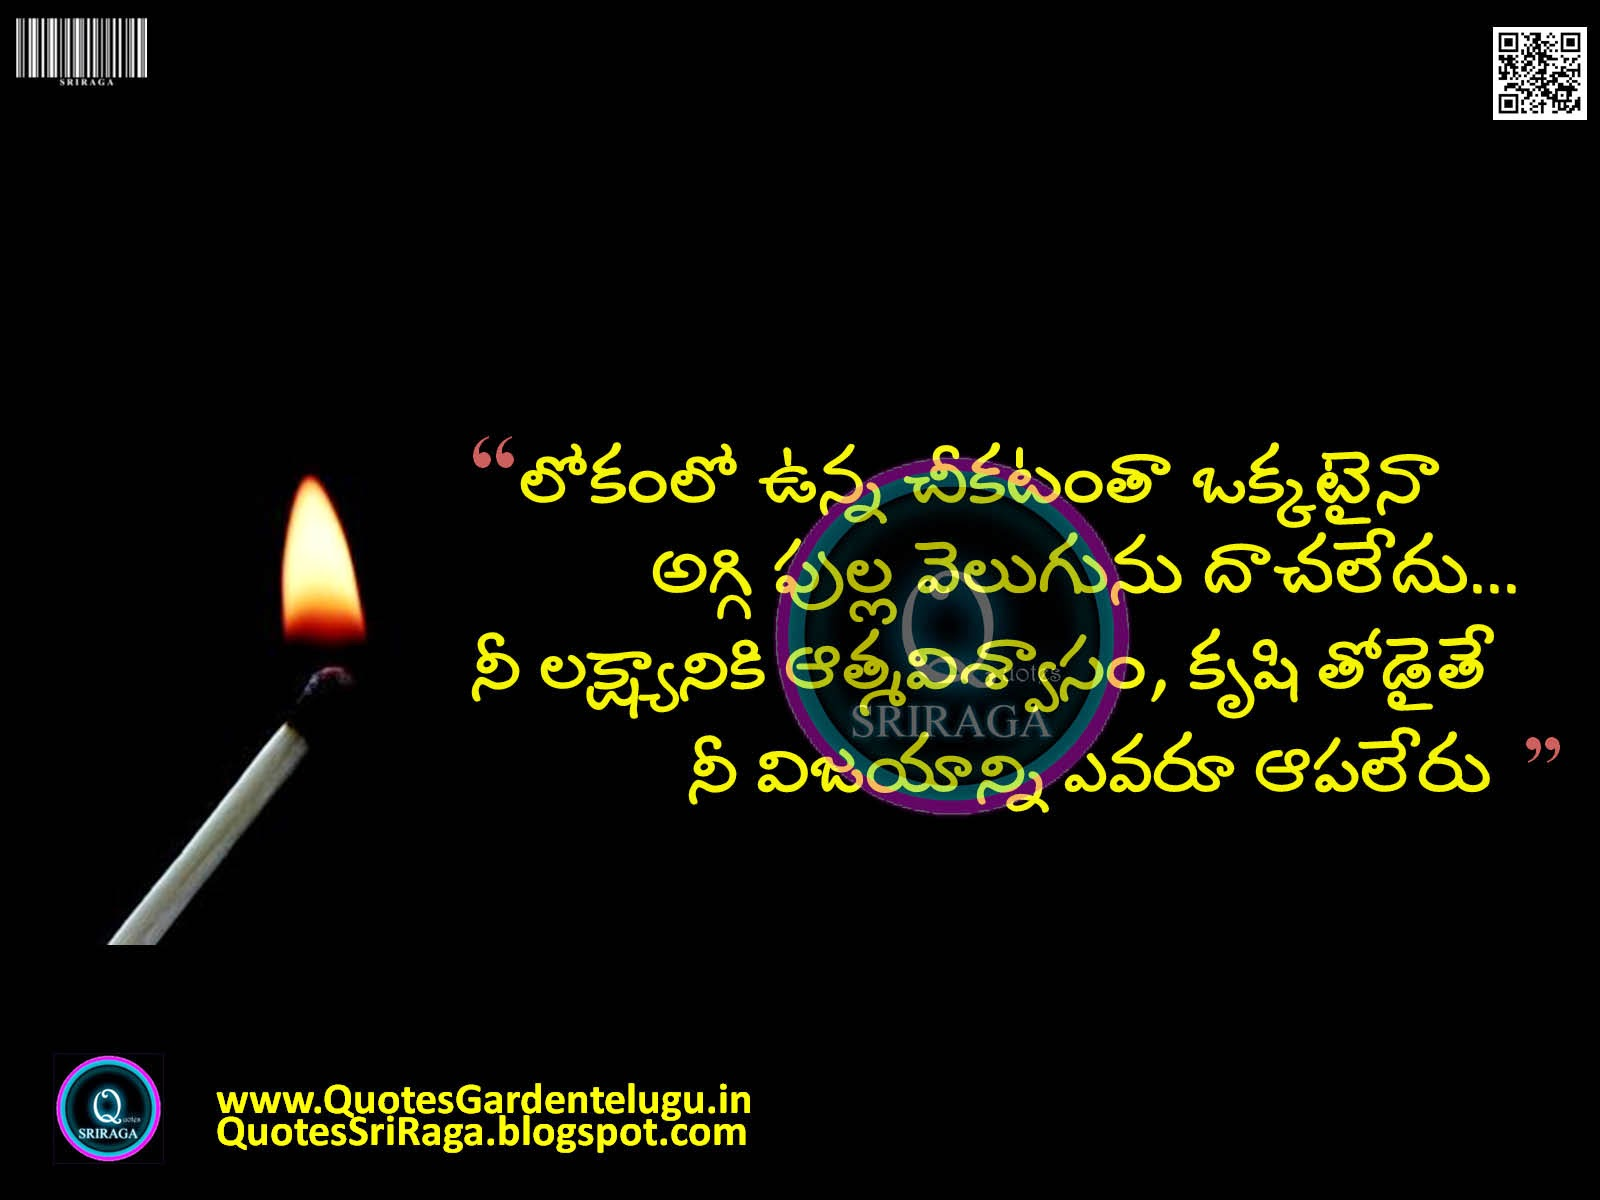 Love Failure Quotes In Tamil Wallpapers Inspirational Life Quotes In Telugu With Hd Wallpapers